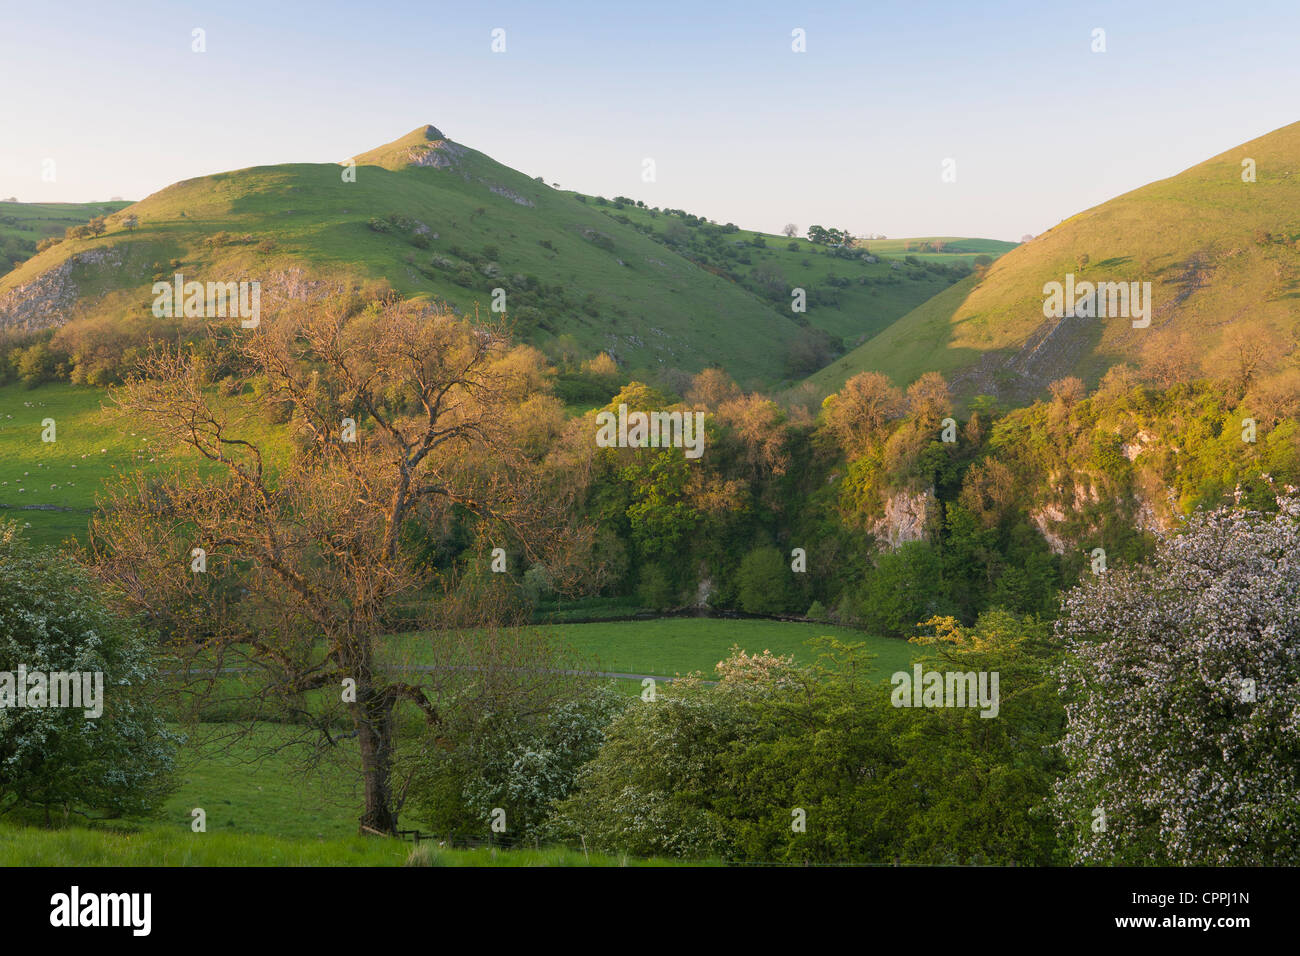 The Manifold Valley, Staffordshire, Peak District, England UK Stock Photo